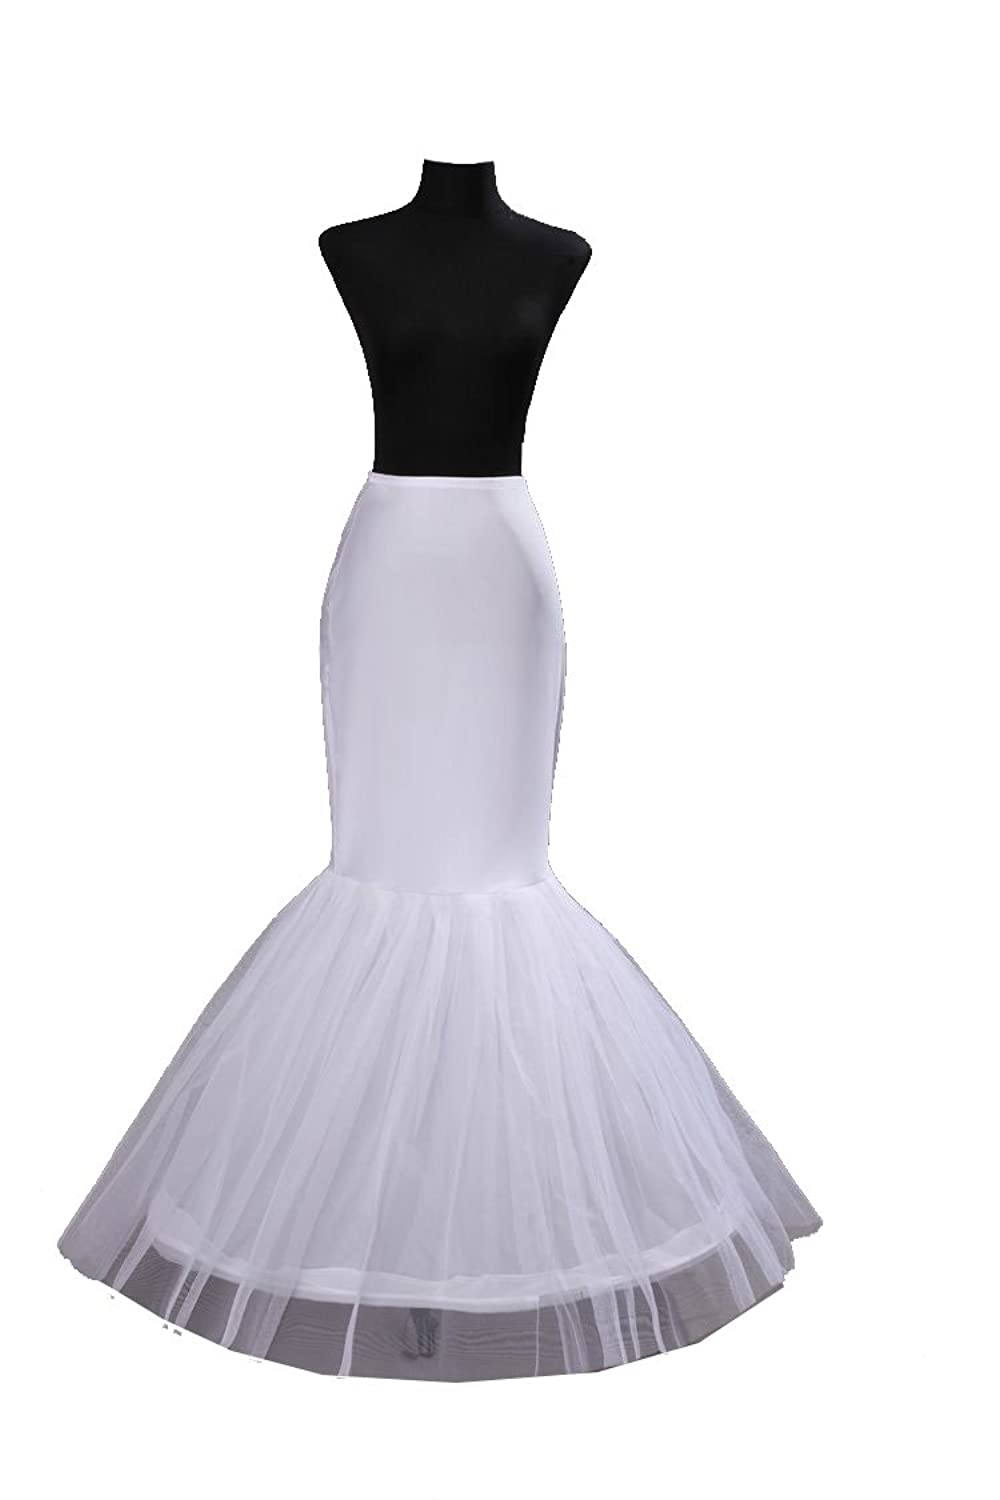 Bridal Mermaid Adjustable Crinoline Petticoat Slips Underskirt At Amazon Womens Clothing Store